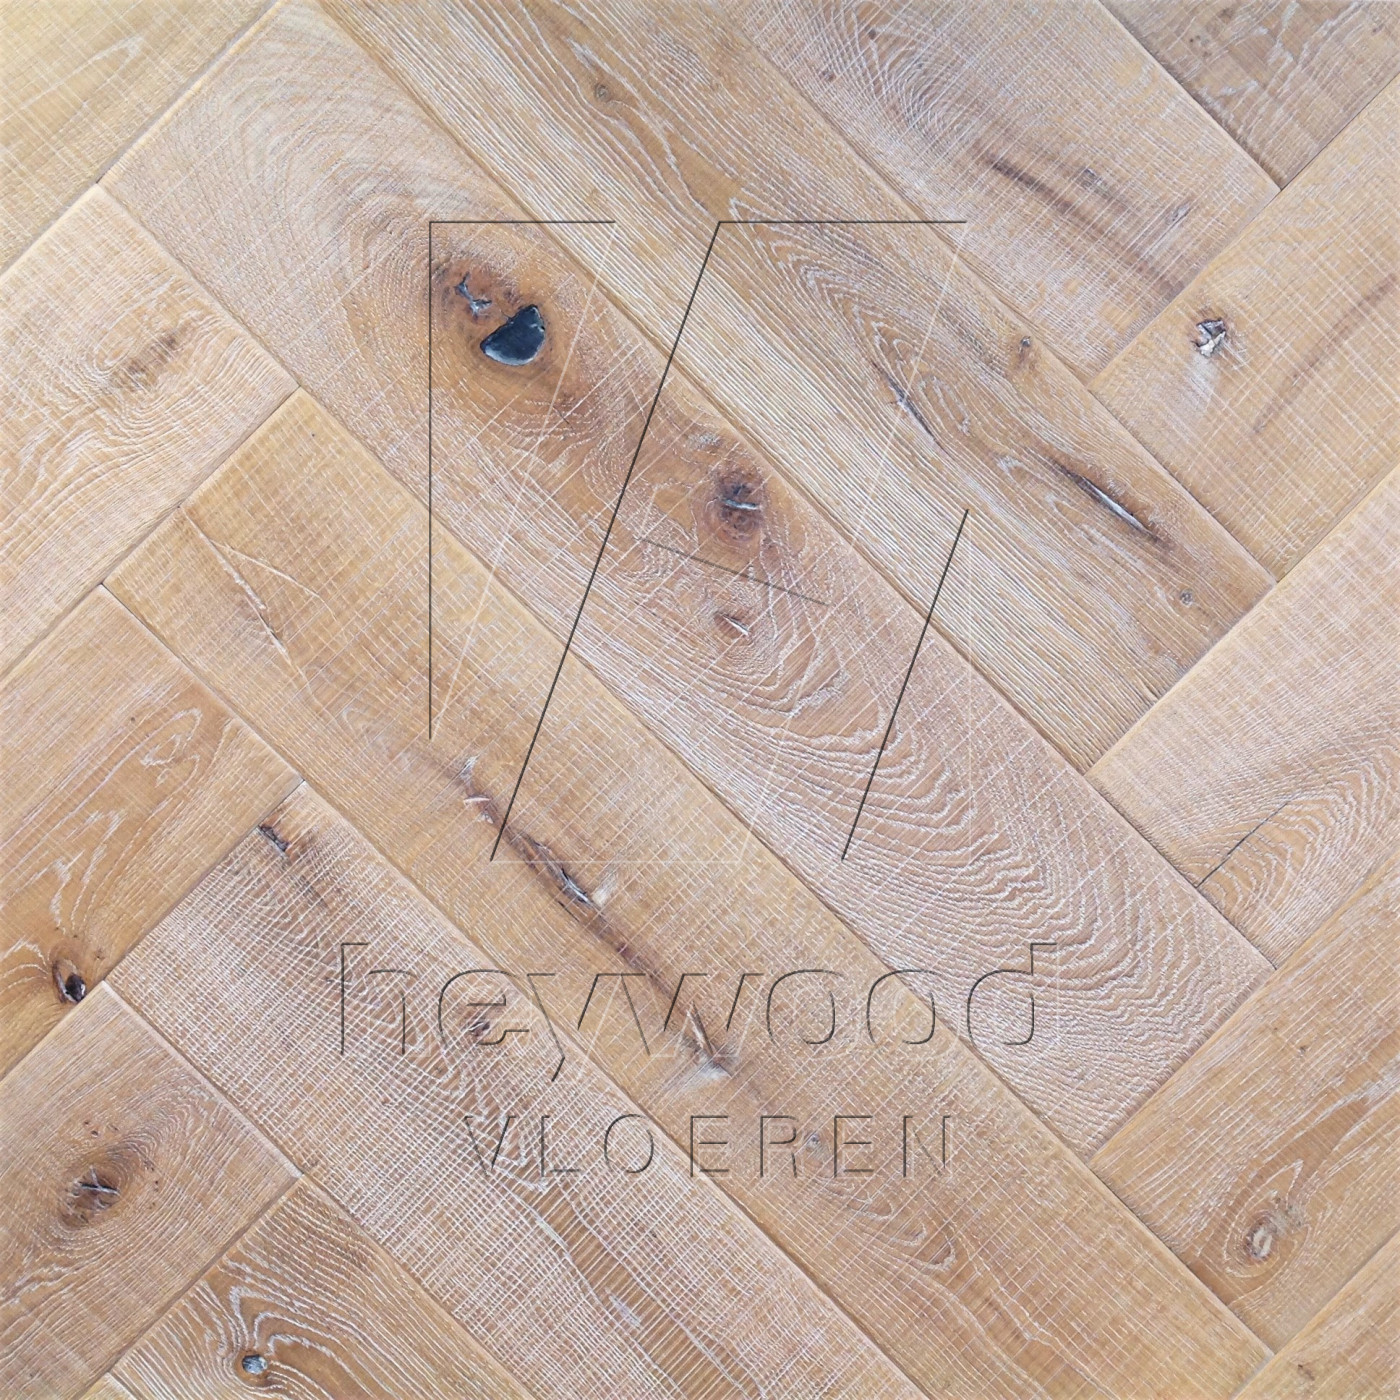 Knotting Hill Herringbone 'Lappland' in Herringbone of Pattern & Panel Floors